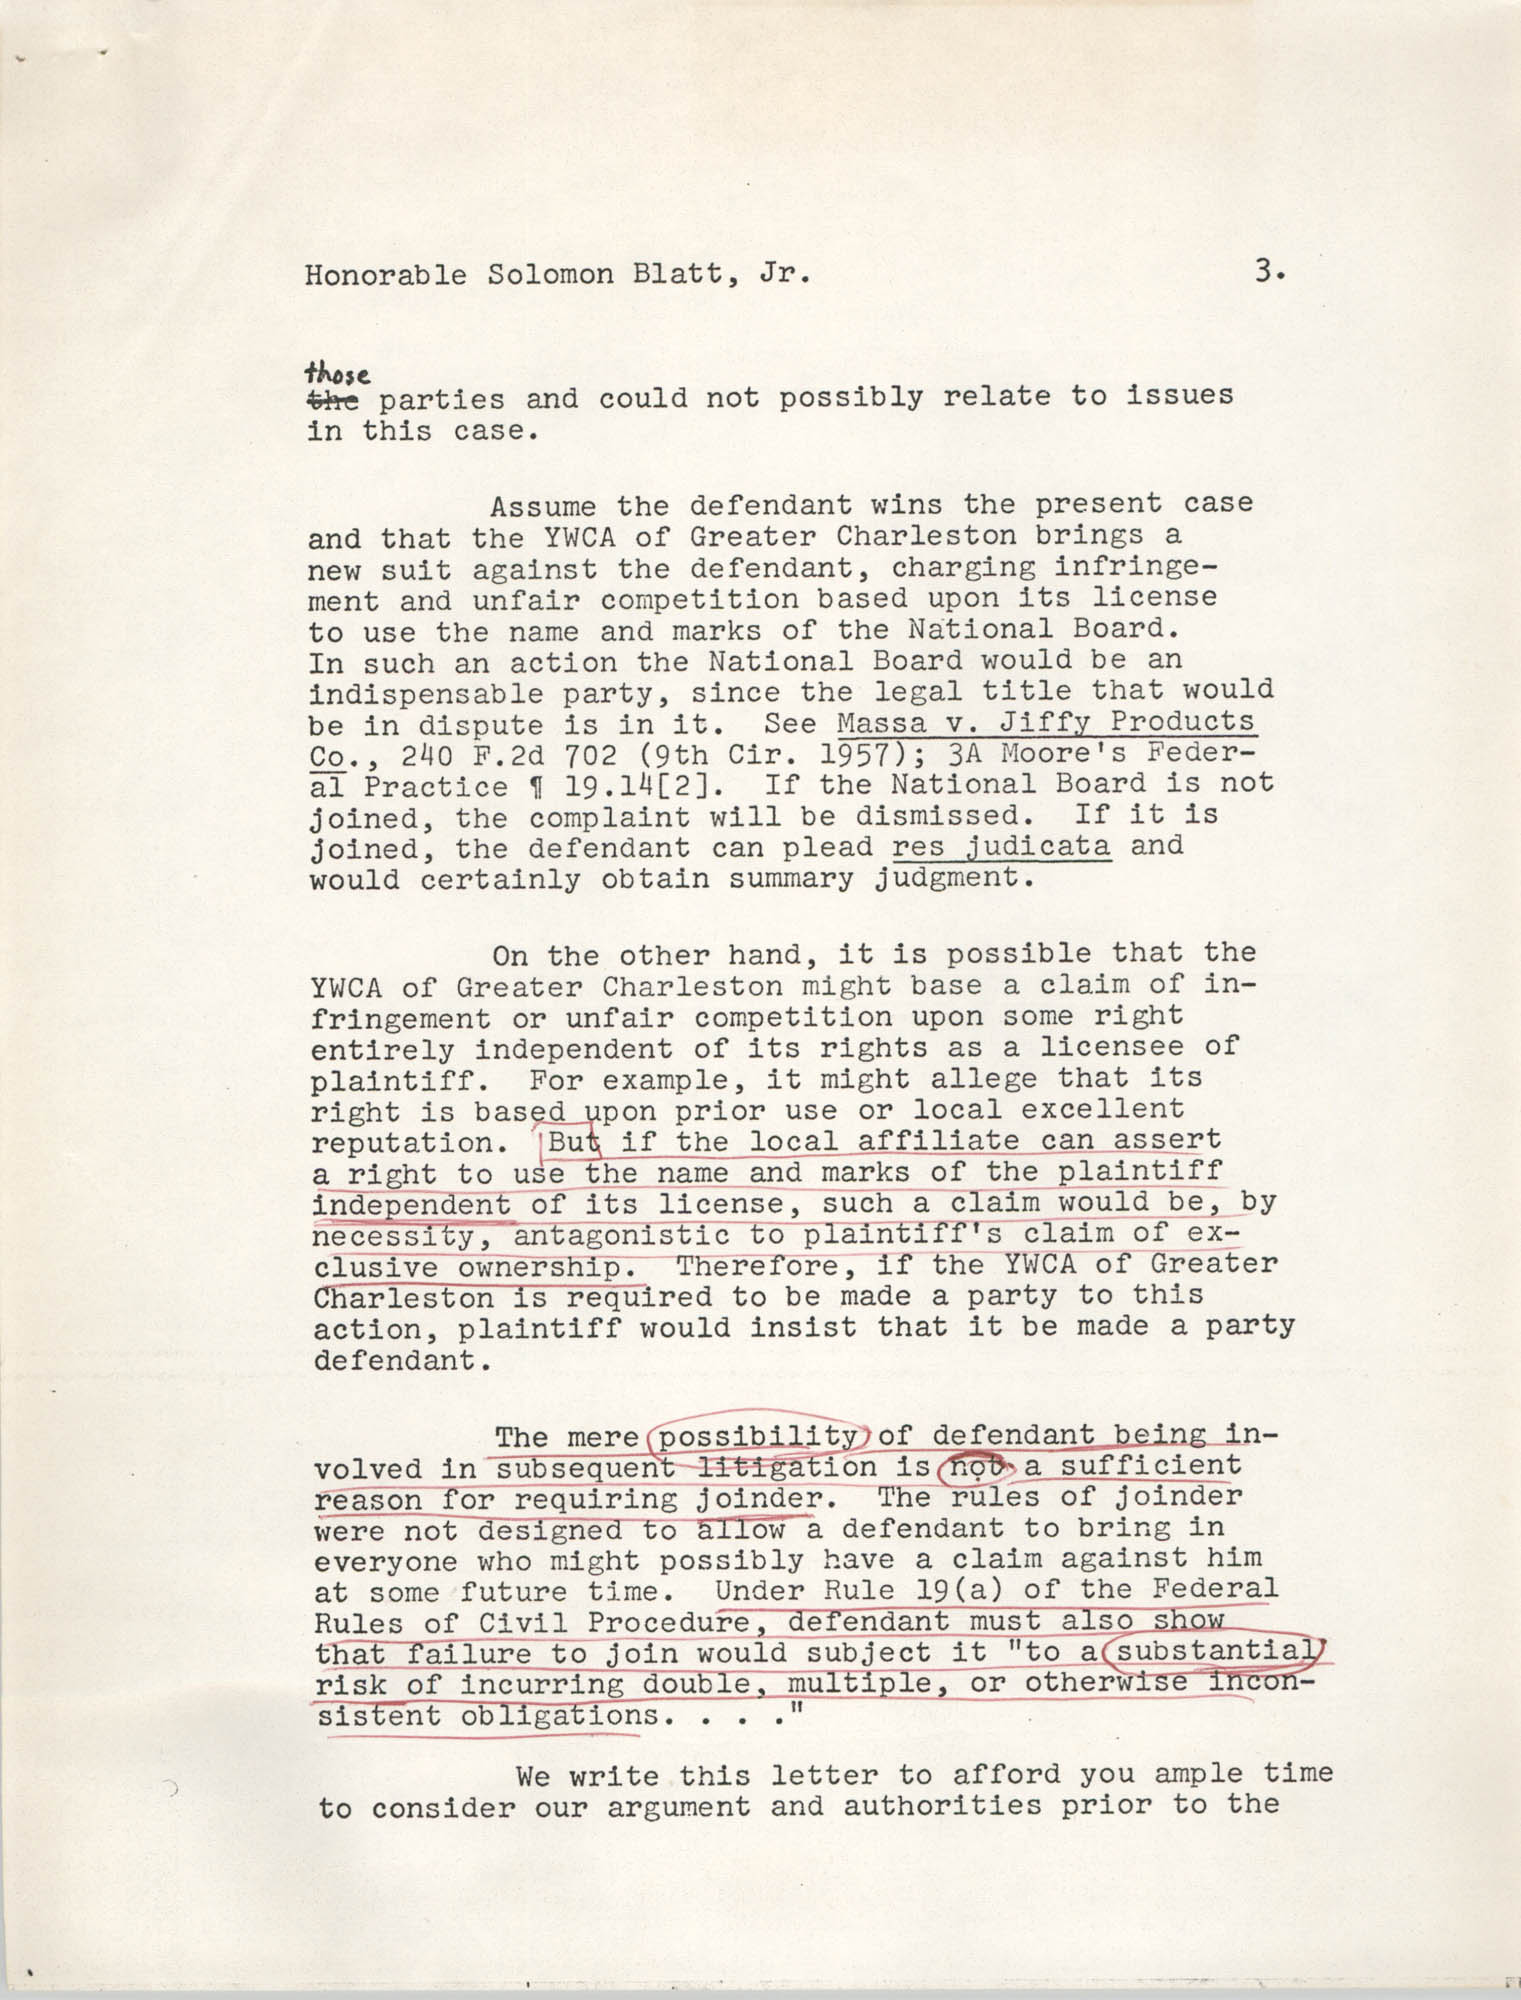 Letter from William C. Pelster to Honorable Solomon Blatt, Jr., October 29, 1971, Page 3